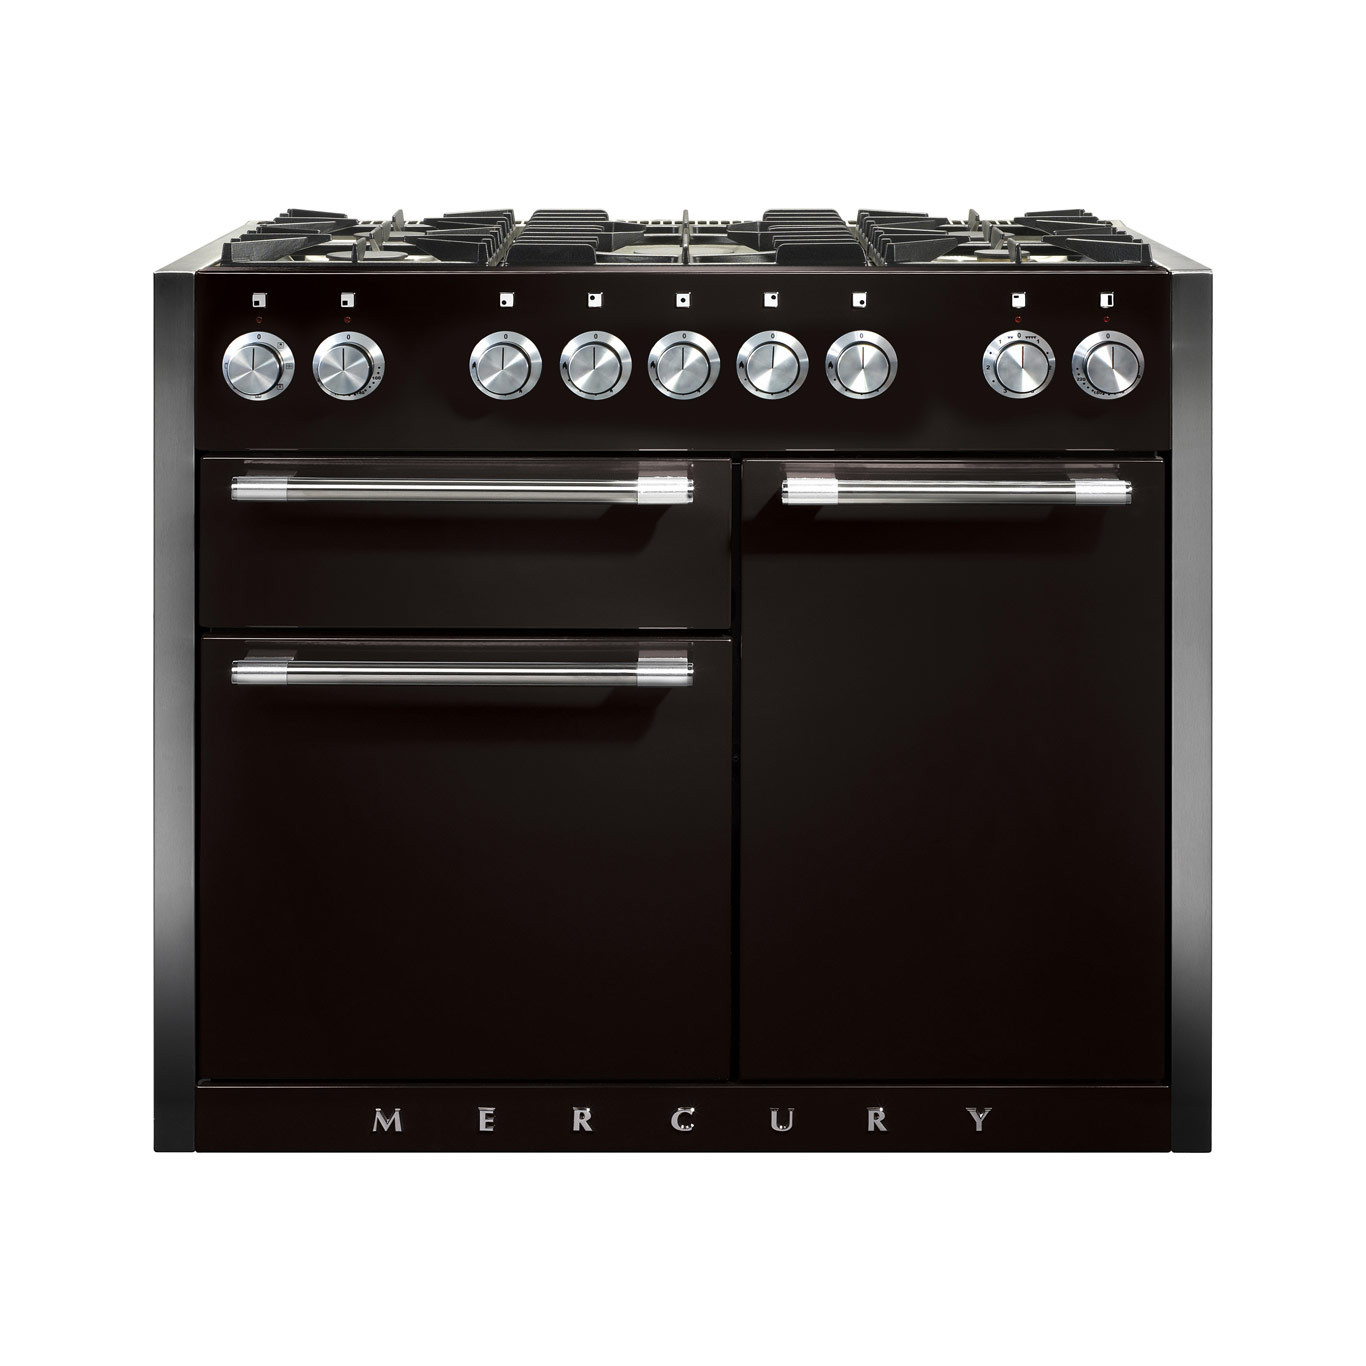 Mercury MCY1082DF Dual Fuel Ash Black Range Cooker